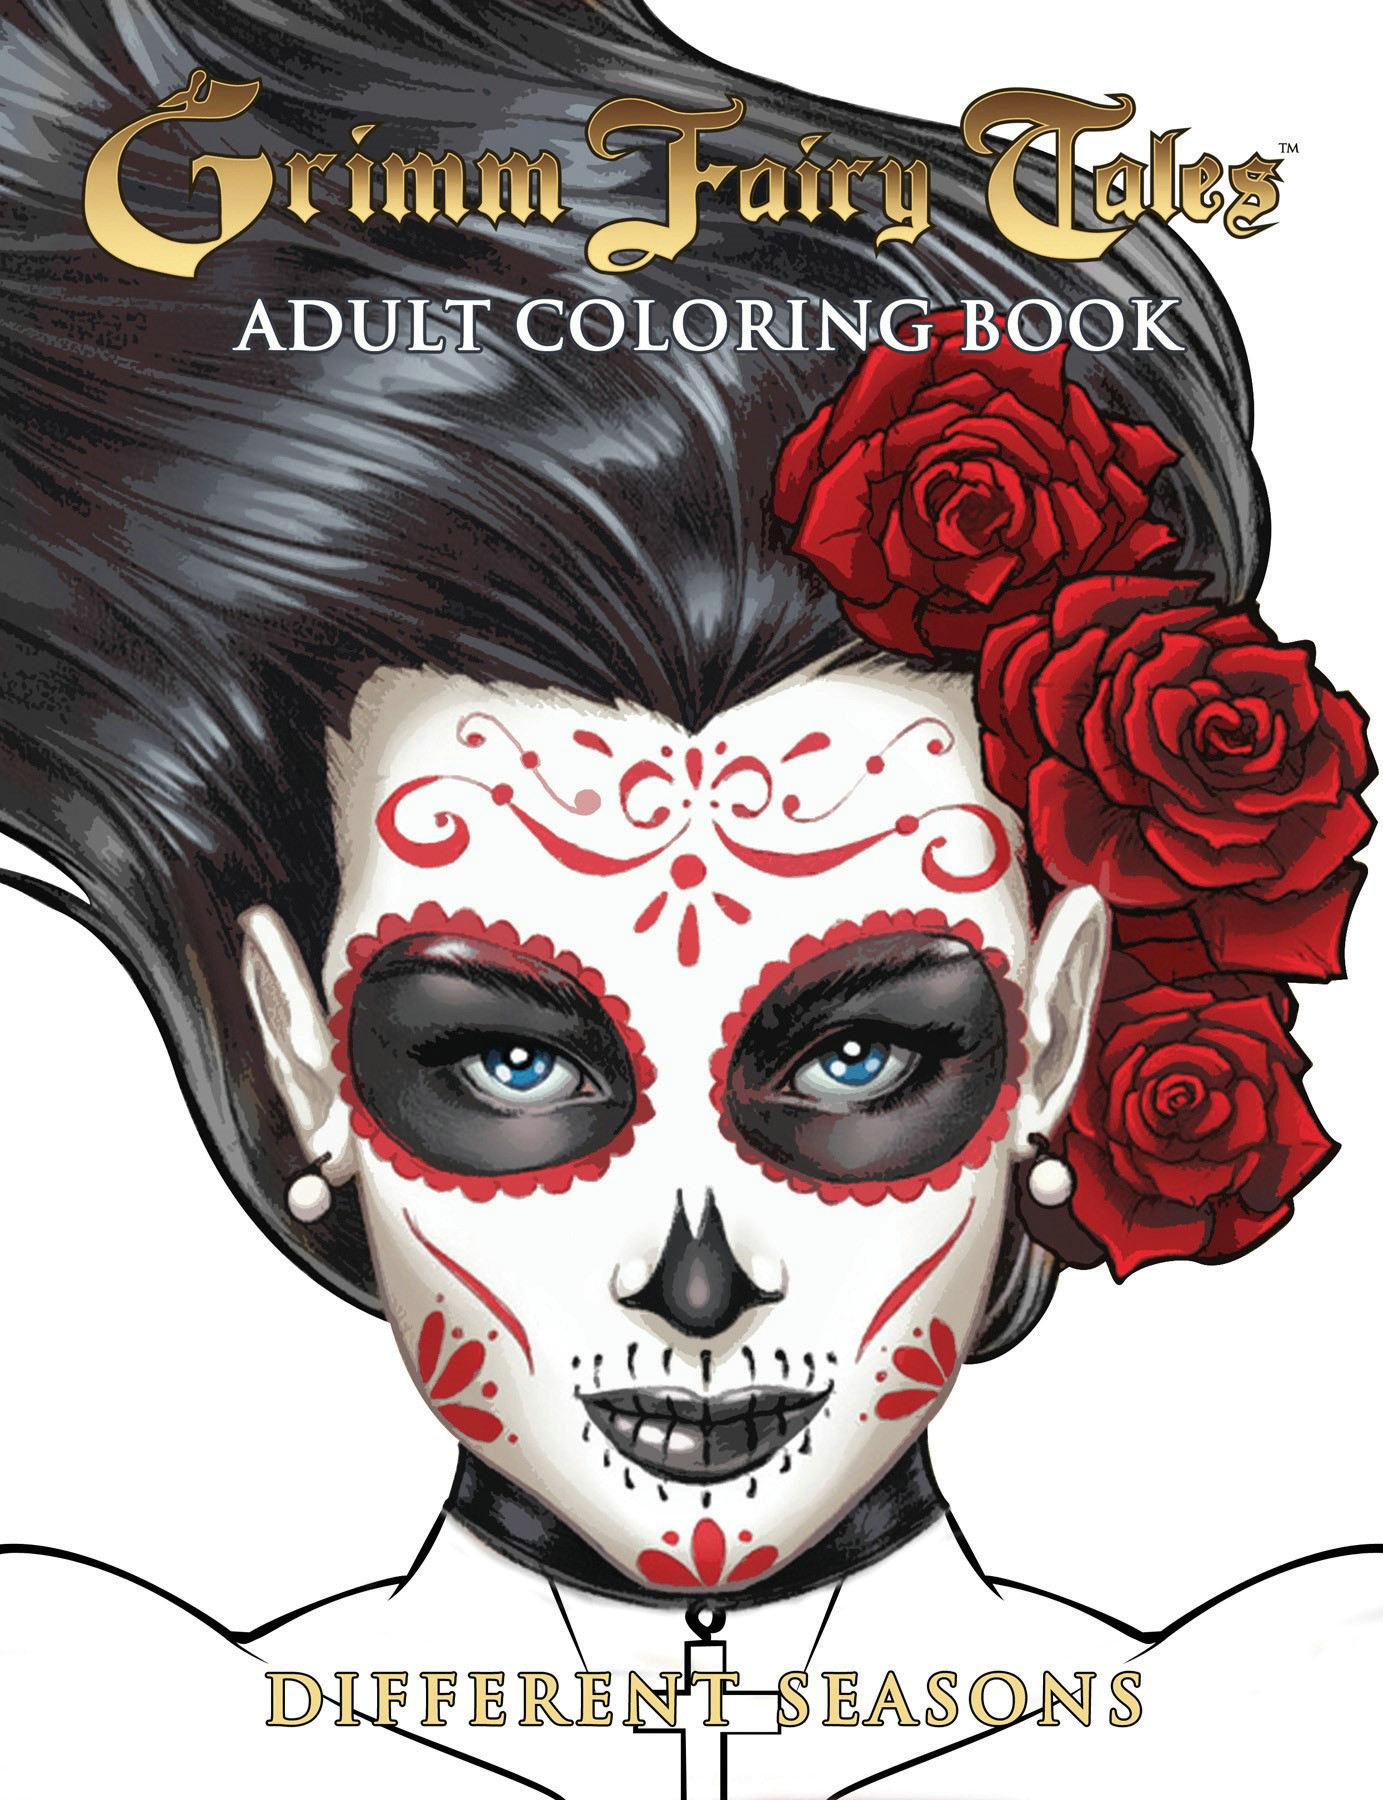 Grimm Fairy Tales Adult Coloring Book Different Seasons (Other)